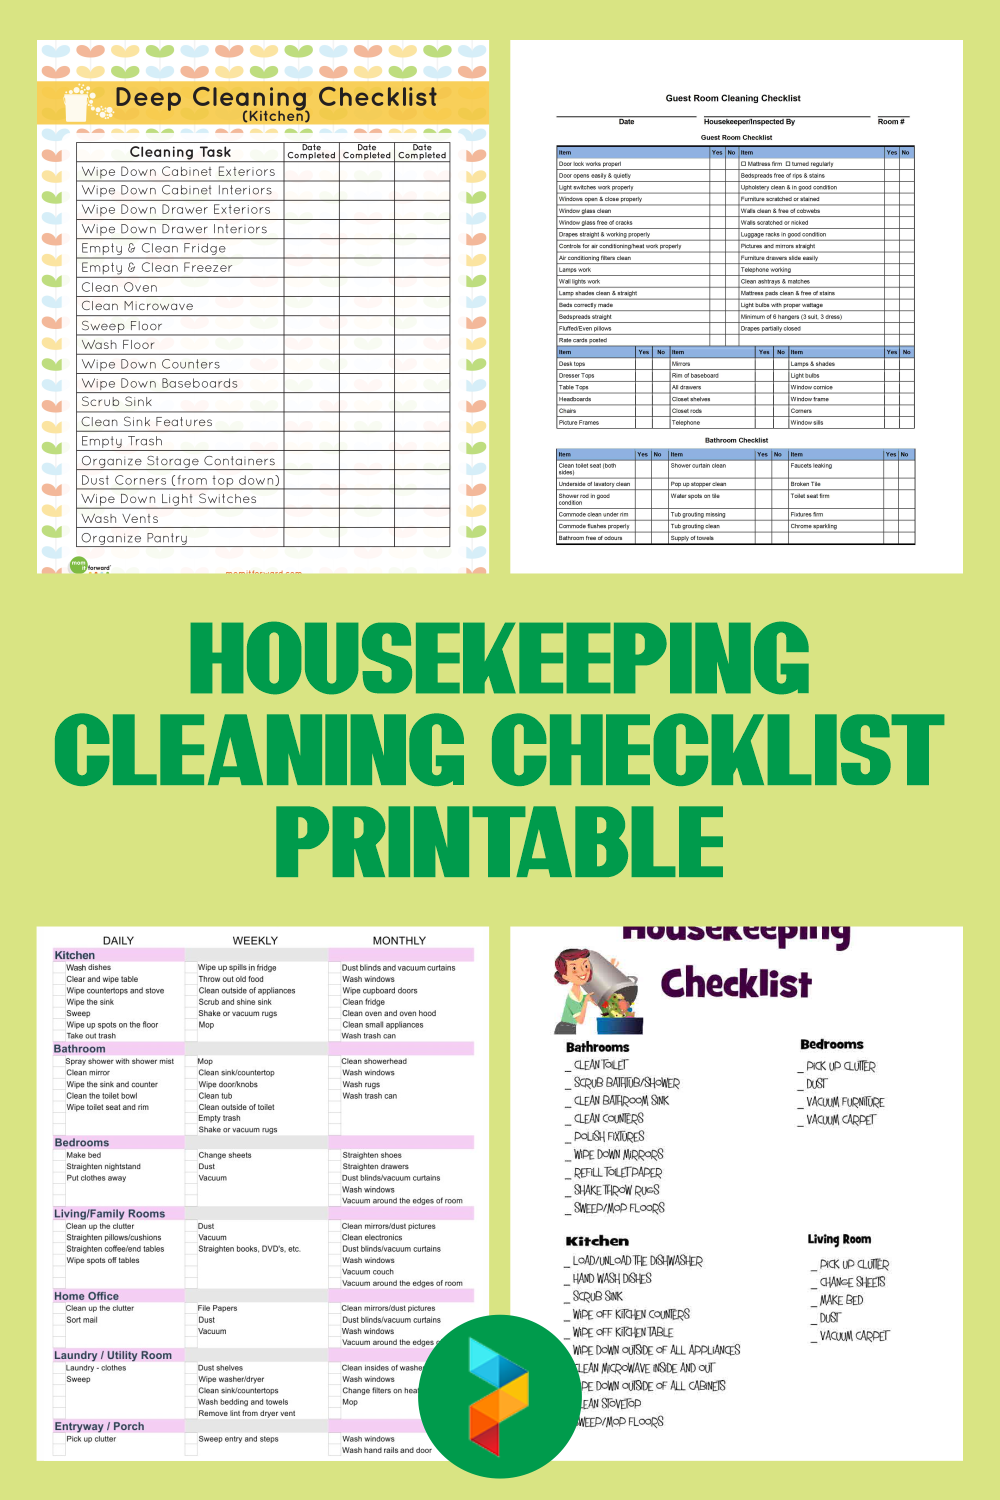 Housekeeping Cleaning Checklist Printable